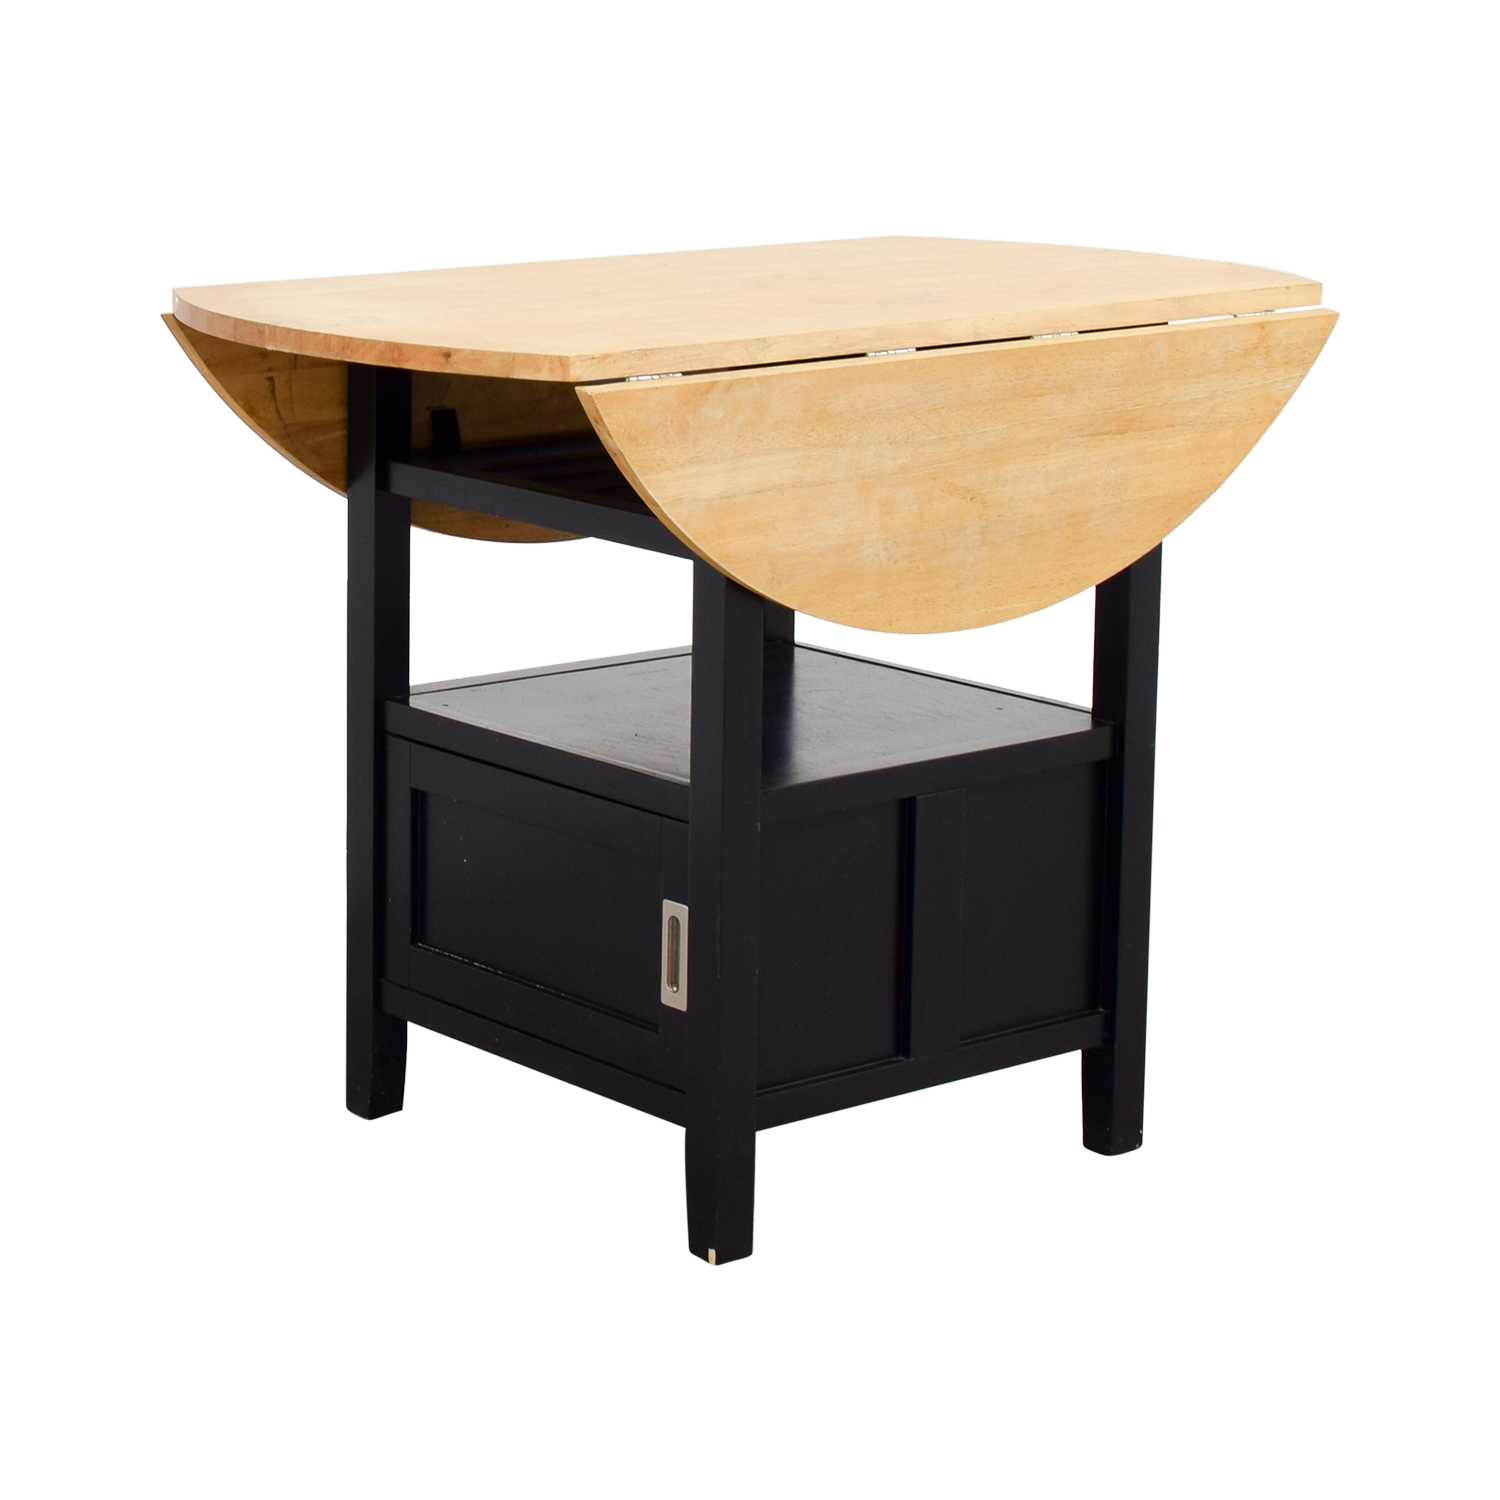 70 Off Crate Barrel Crate Barrel Counter Height